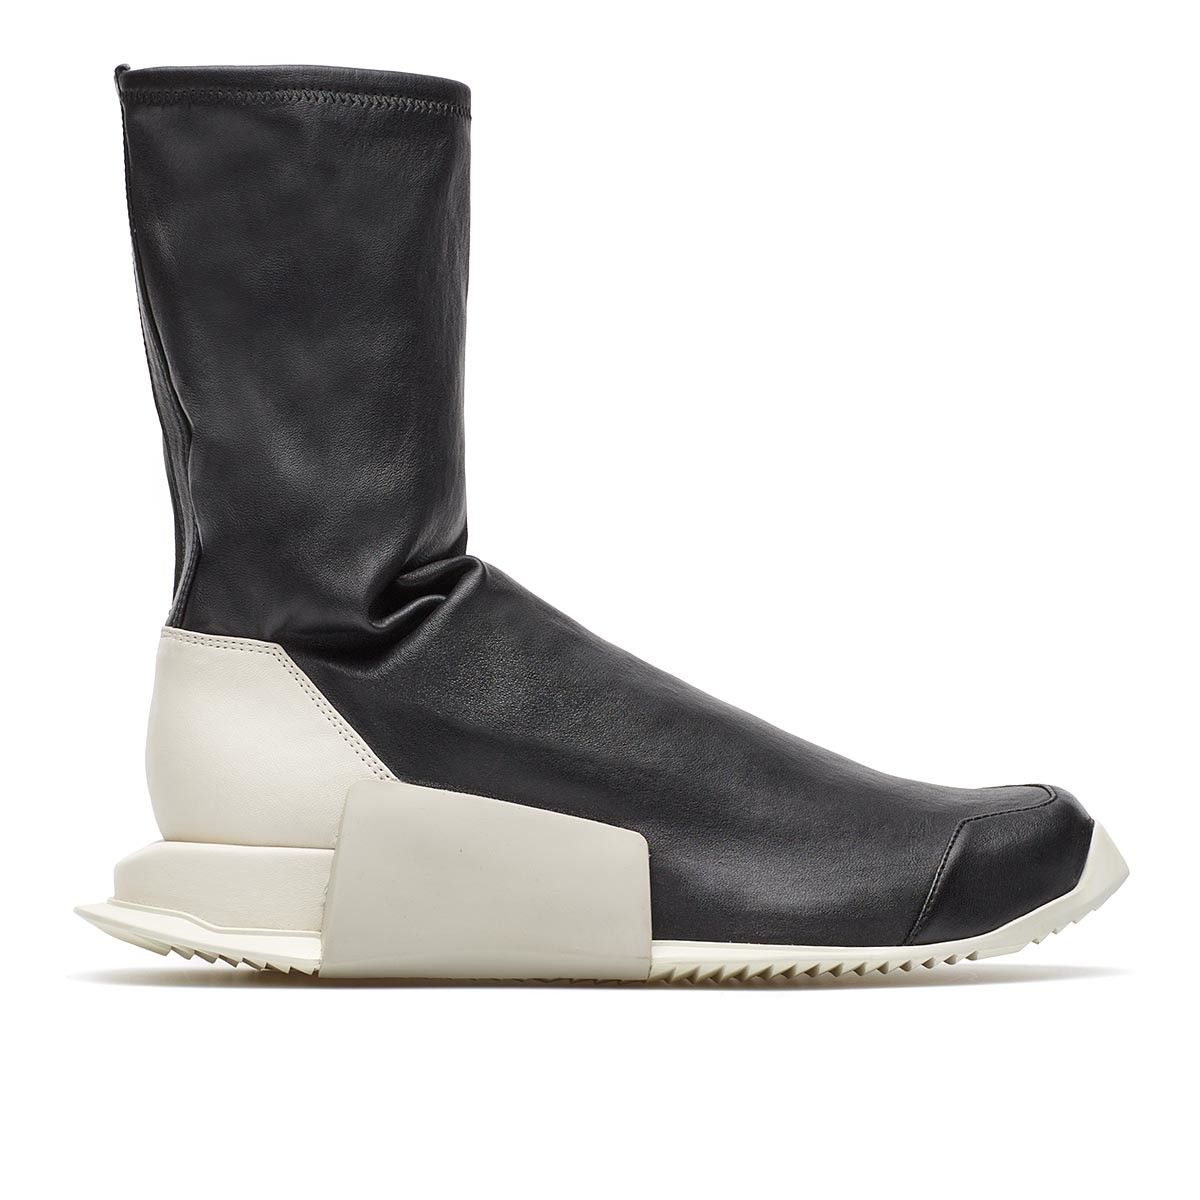 S2017 Rick Owens x Adidas collection